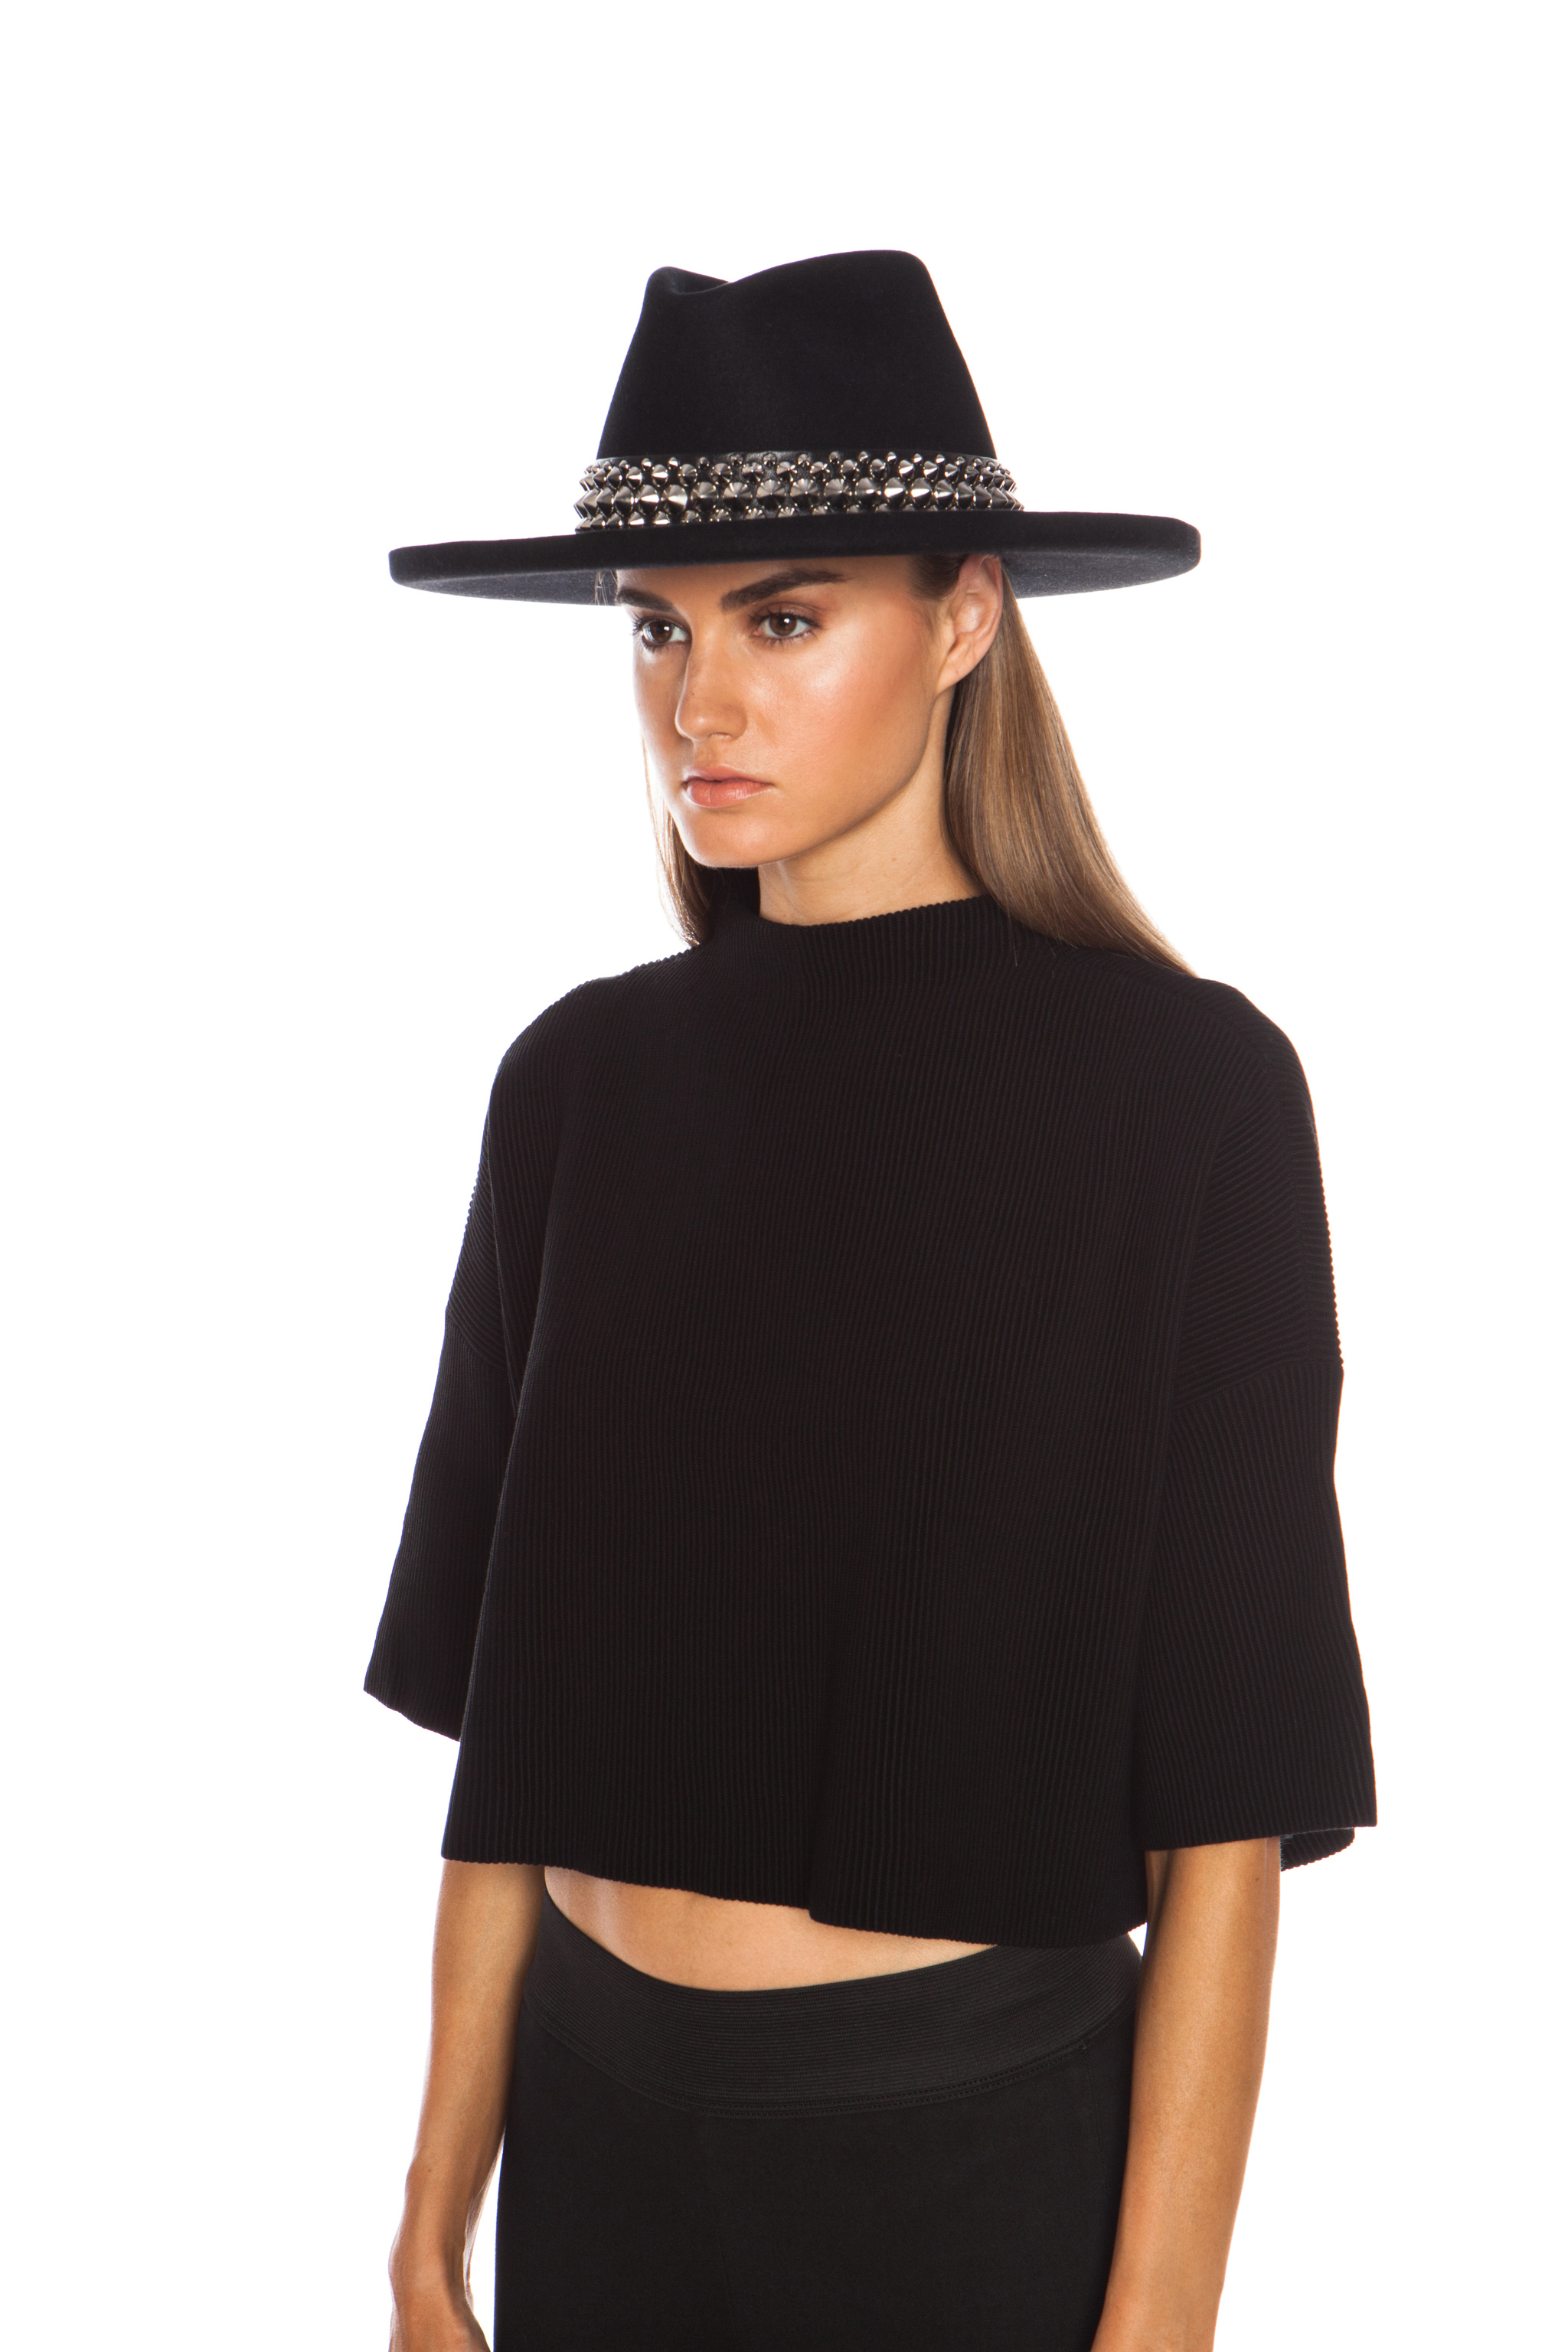 Lyst - Gladys Tamez Millinery The Johnny Hat with Studded Band in Black 006e6158aee